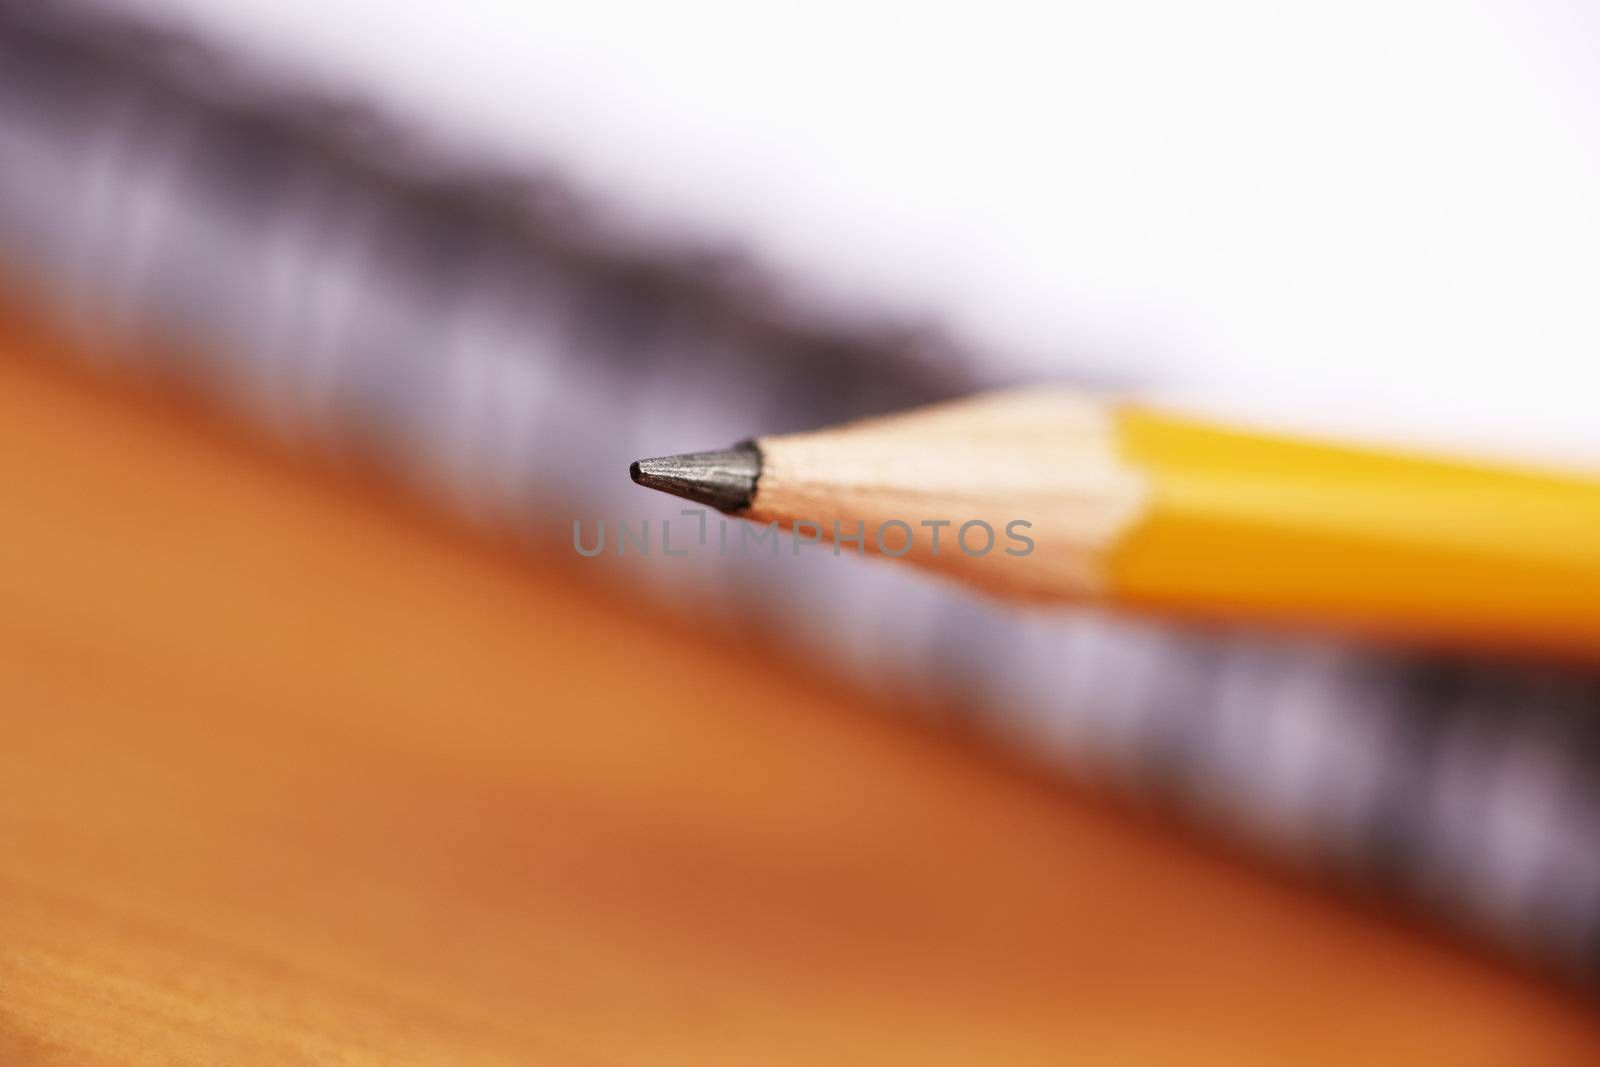 yellow pencil, selective focus on writing part (center of photo)